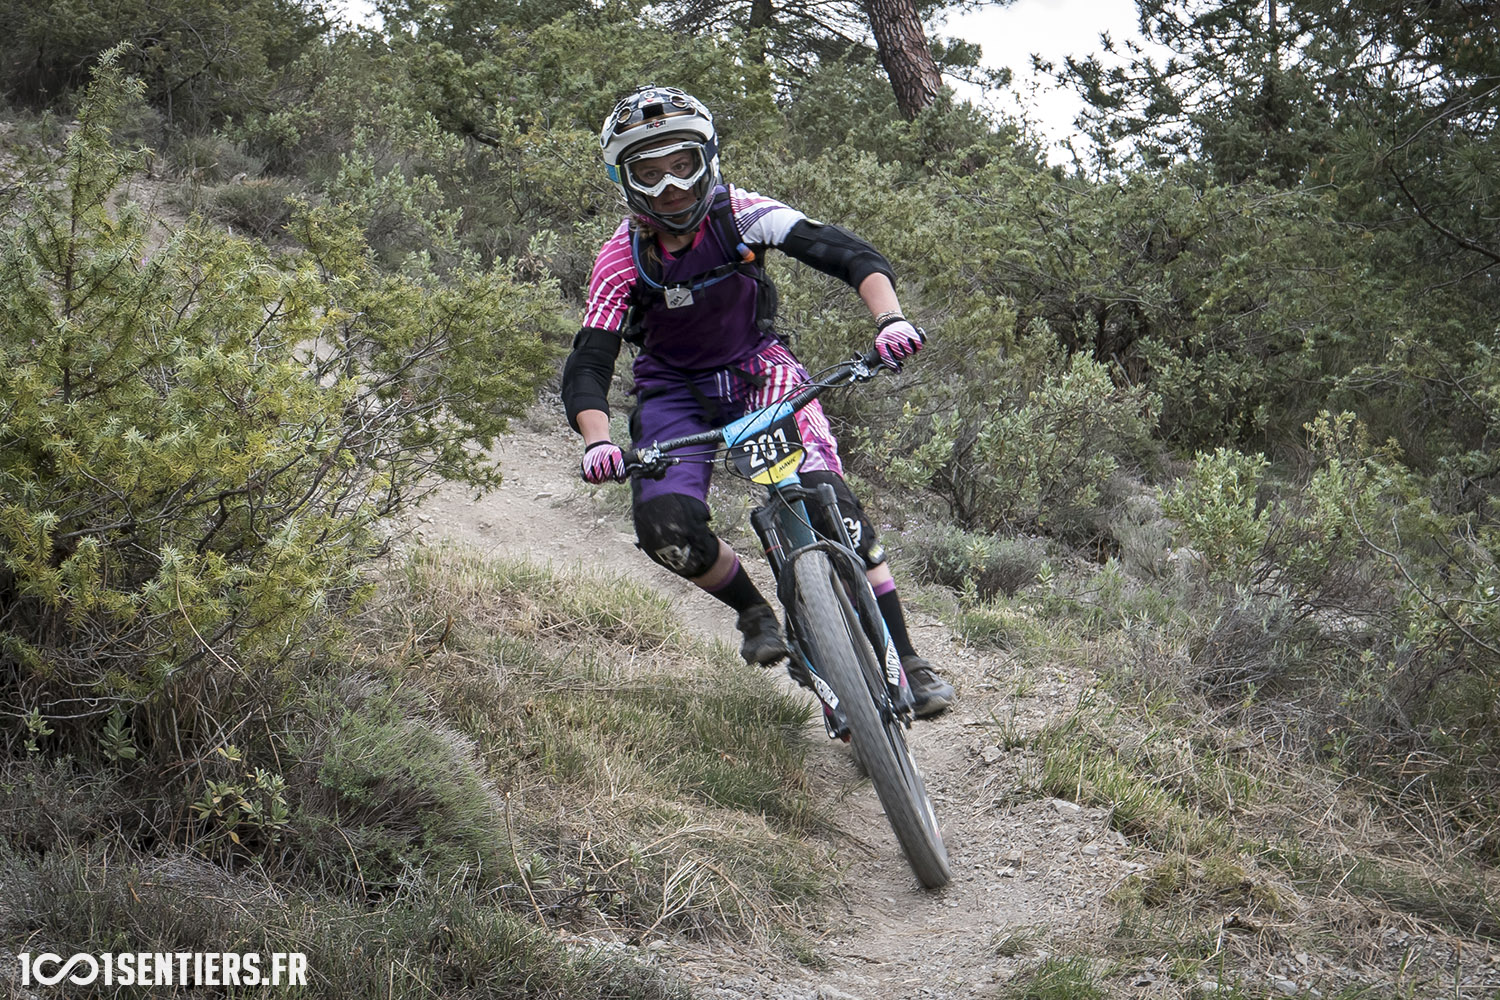 beverally 2016 1001sentiers 1001 enduro tour 24